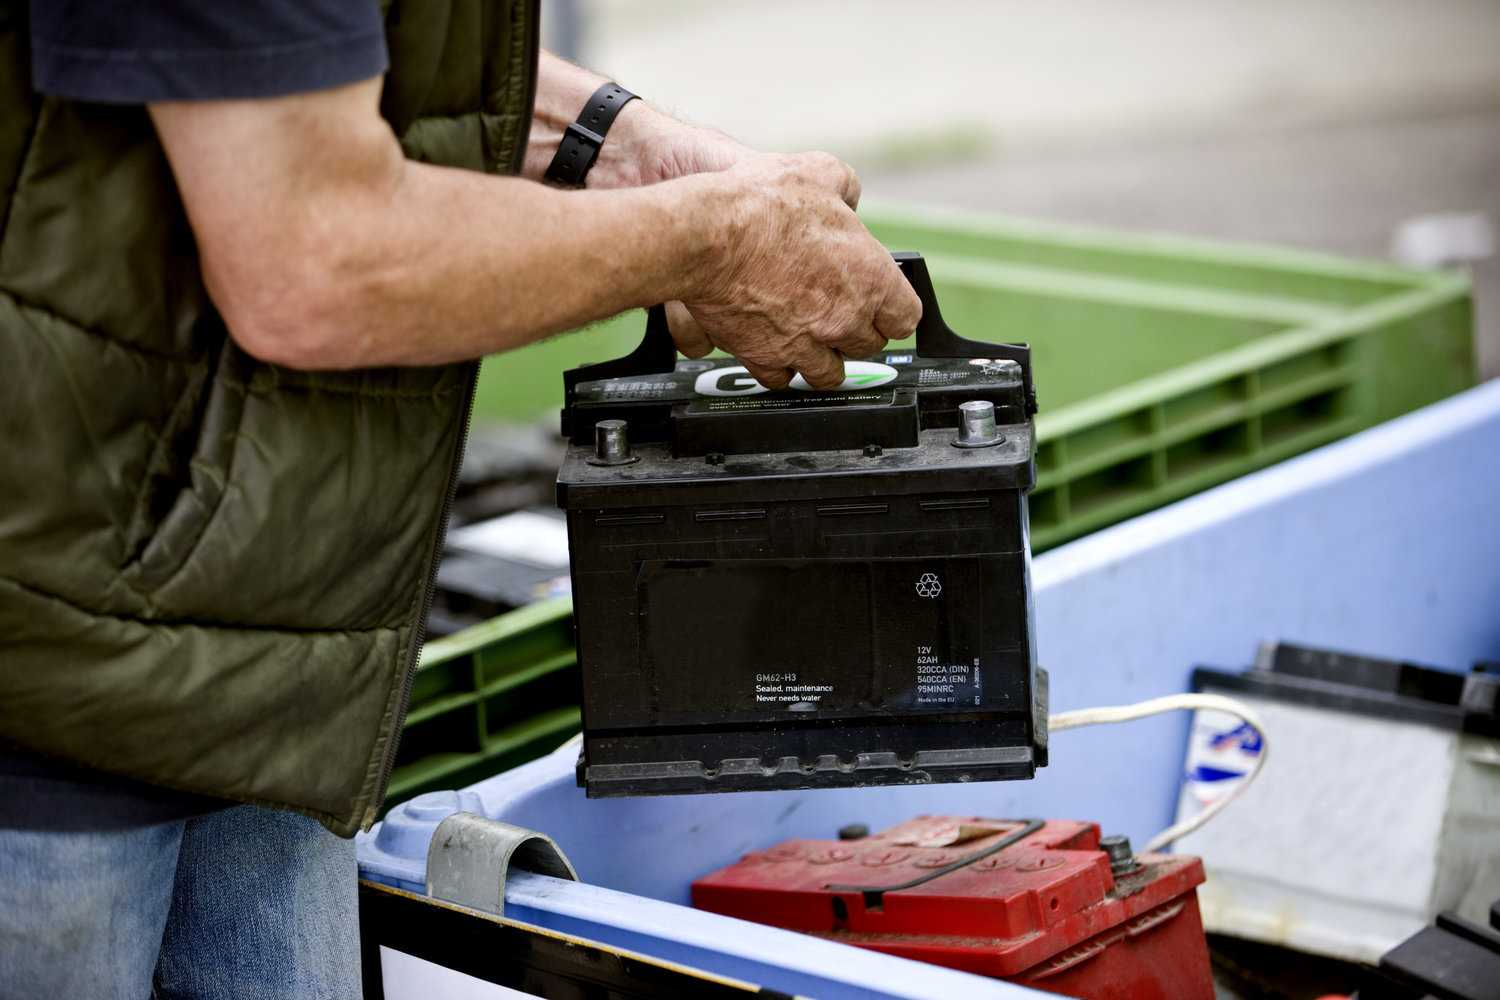 where to dispose of car batteries